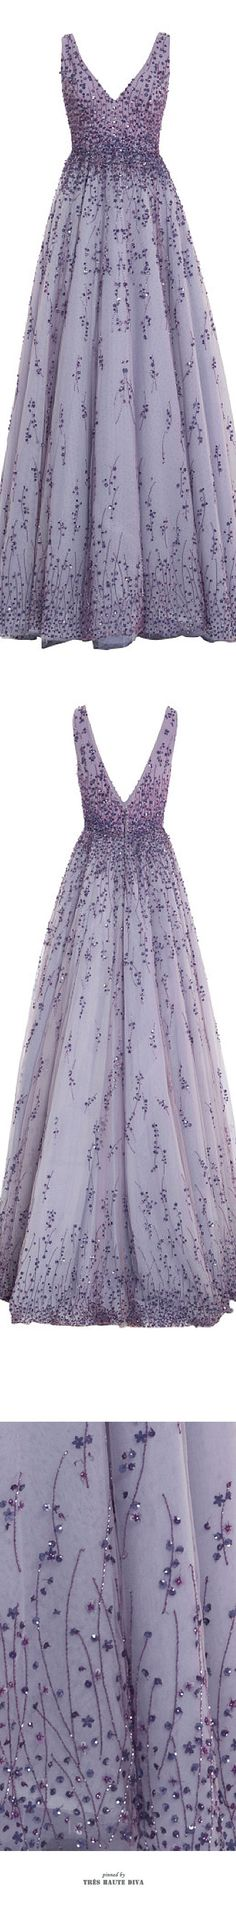 Glamour Gown...Monique Lhuillier Violet Embroidered Tulle V-Neck Ball Gown ♔ SS 2015